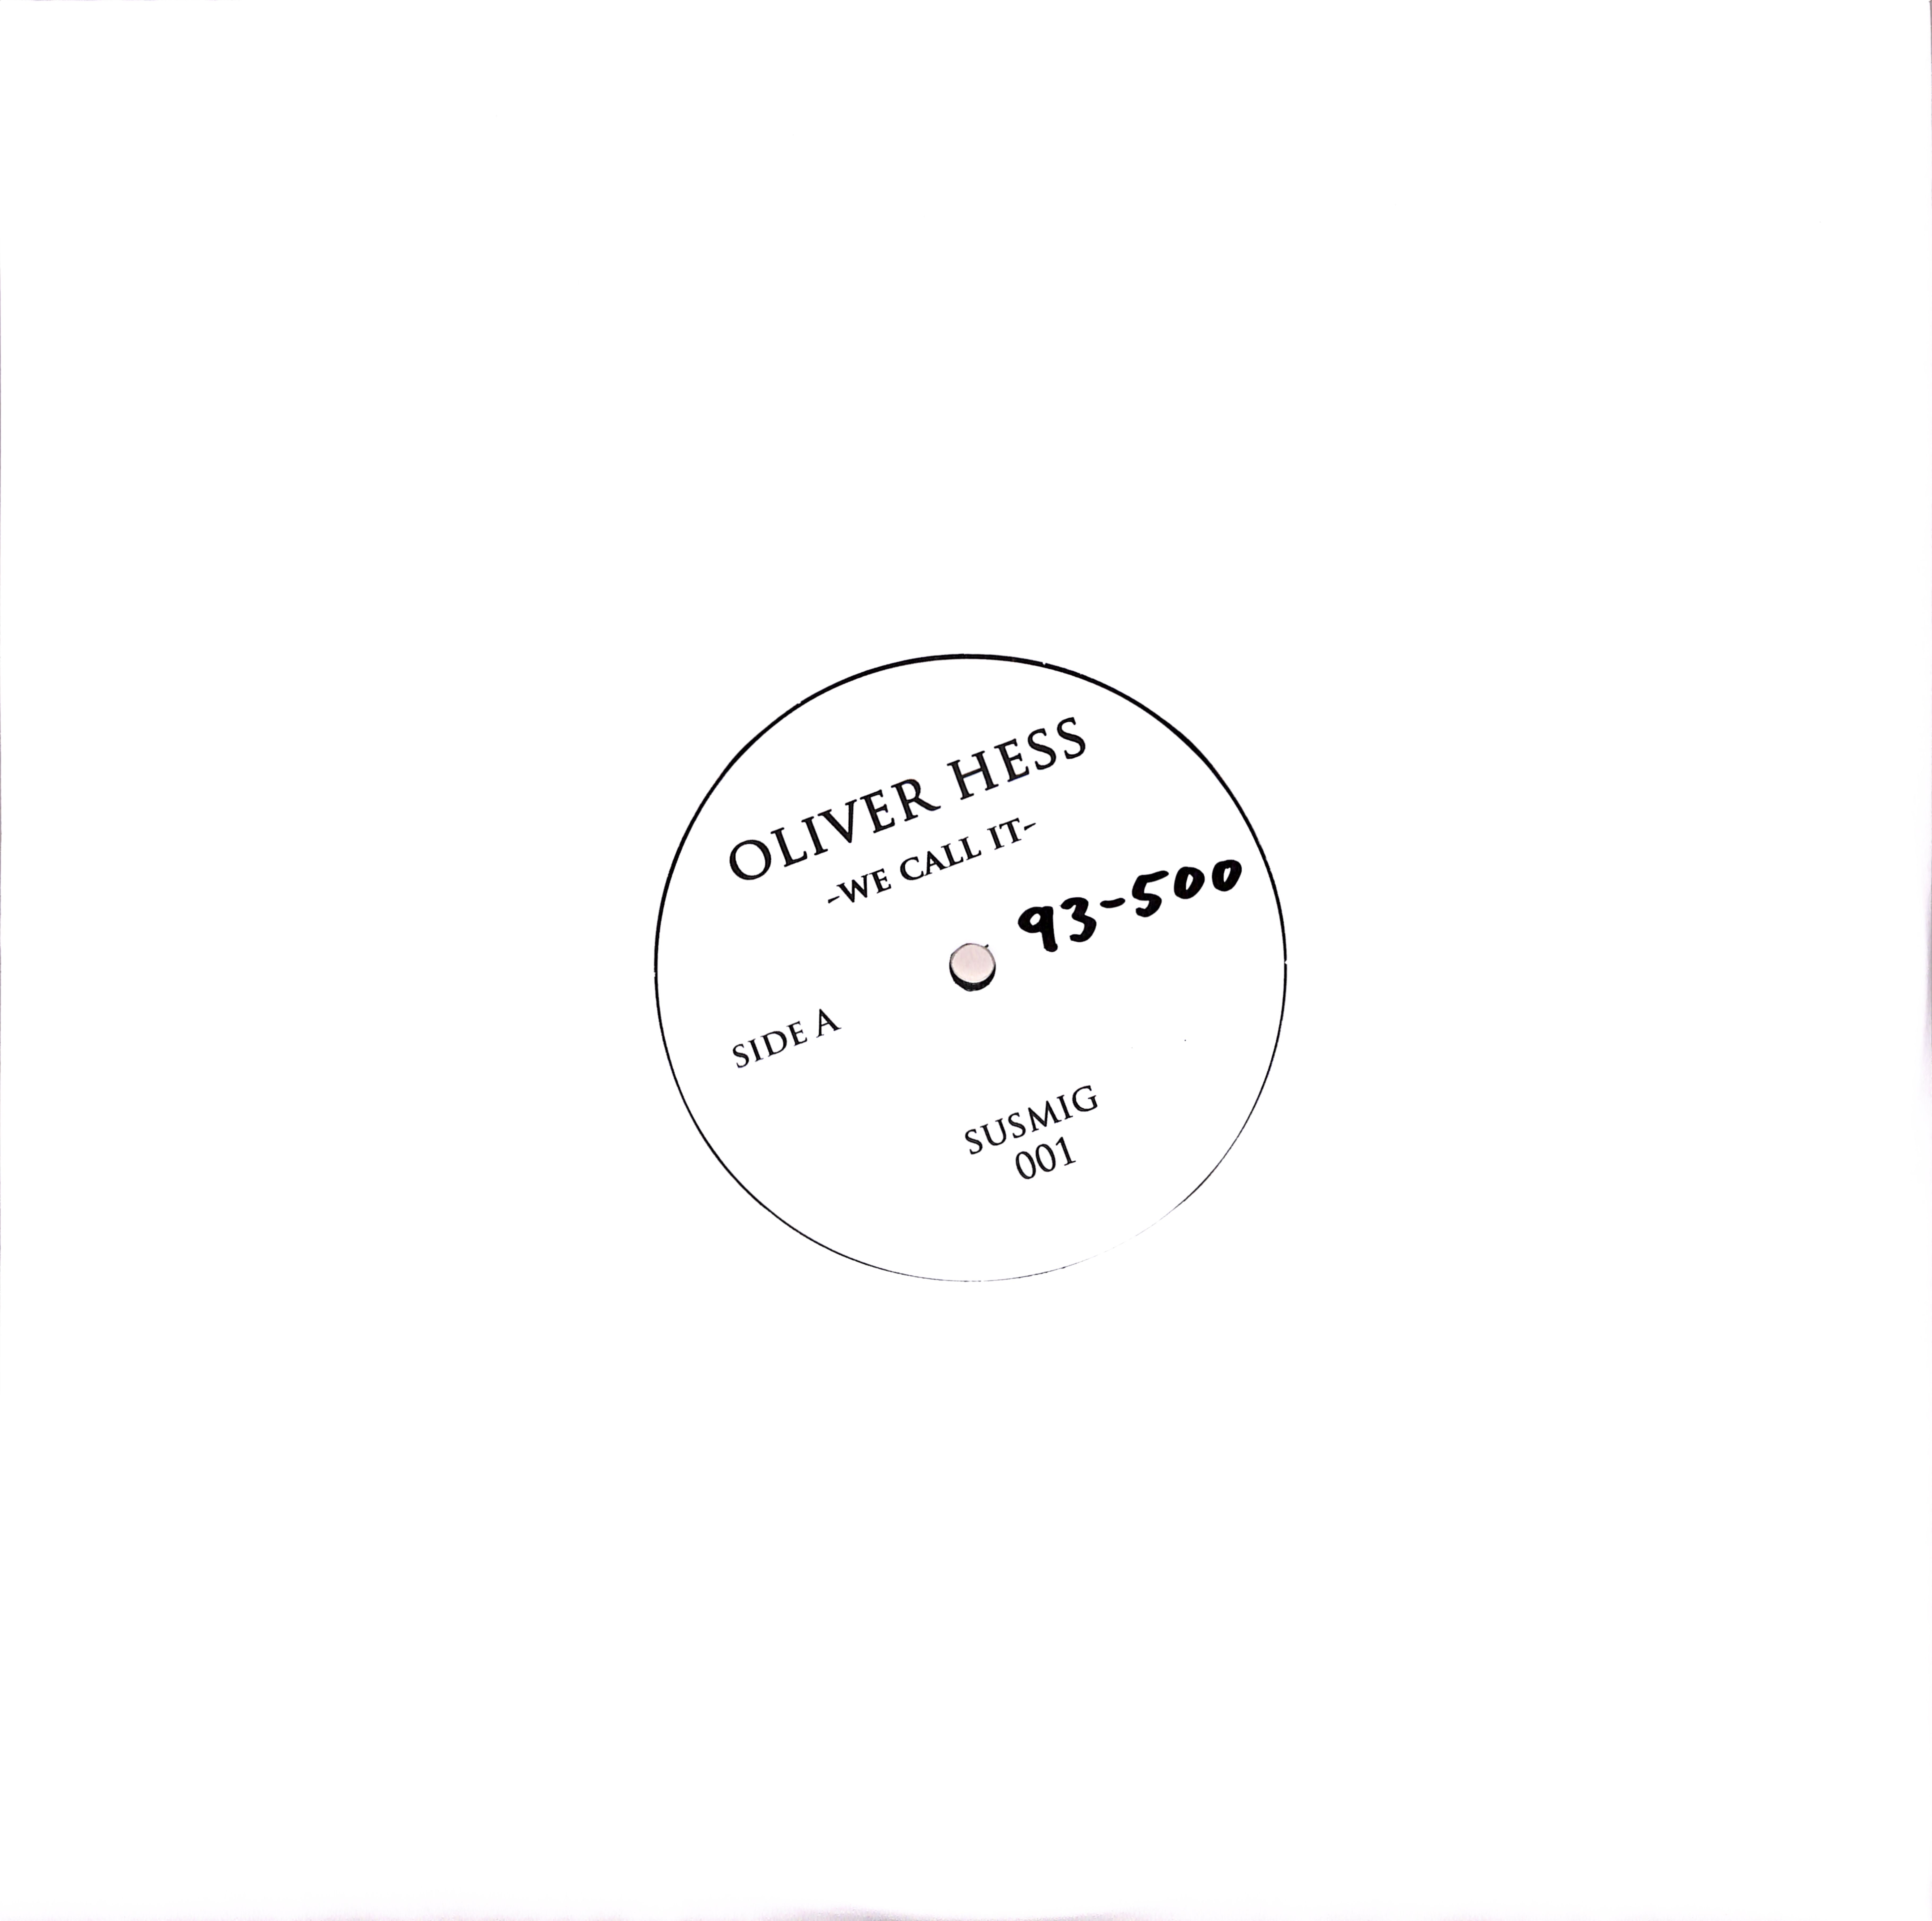 Oliver Hess - TIME AGAIN / WE CALL IT